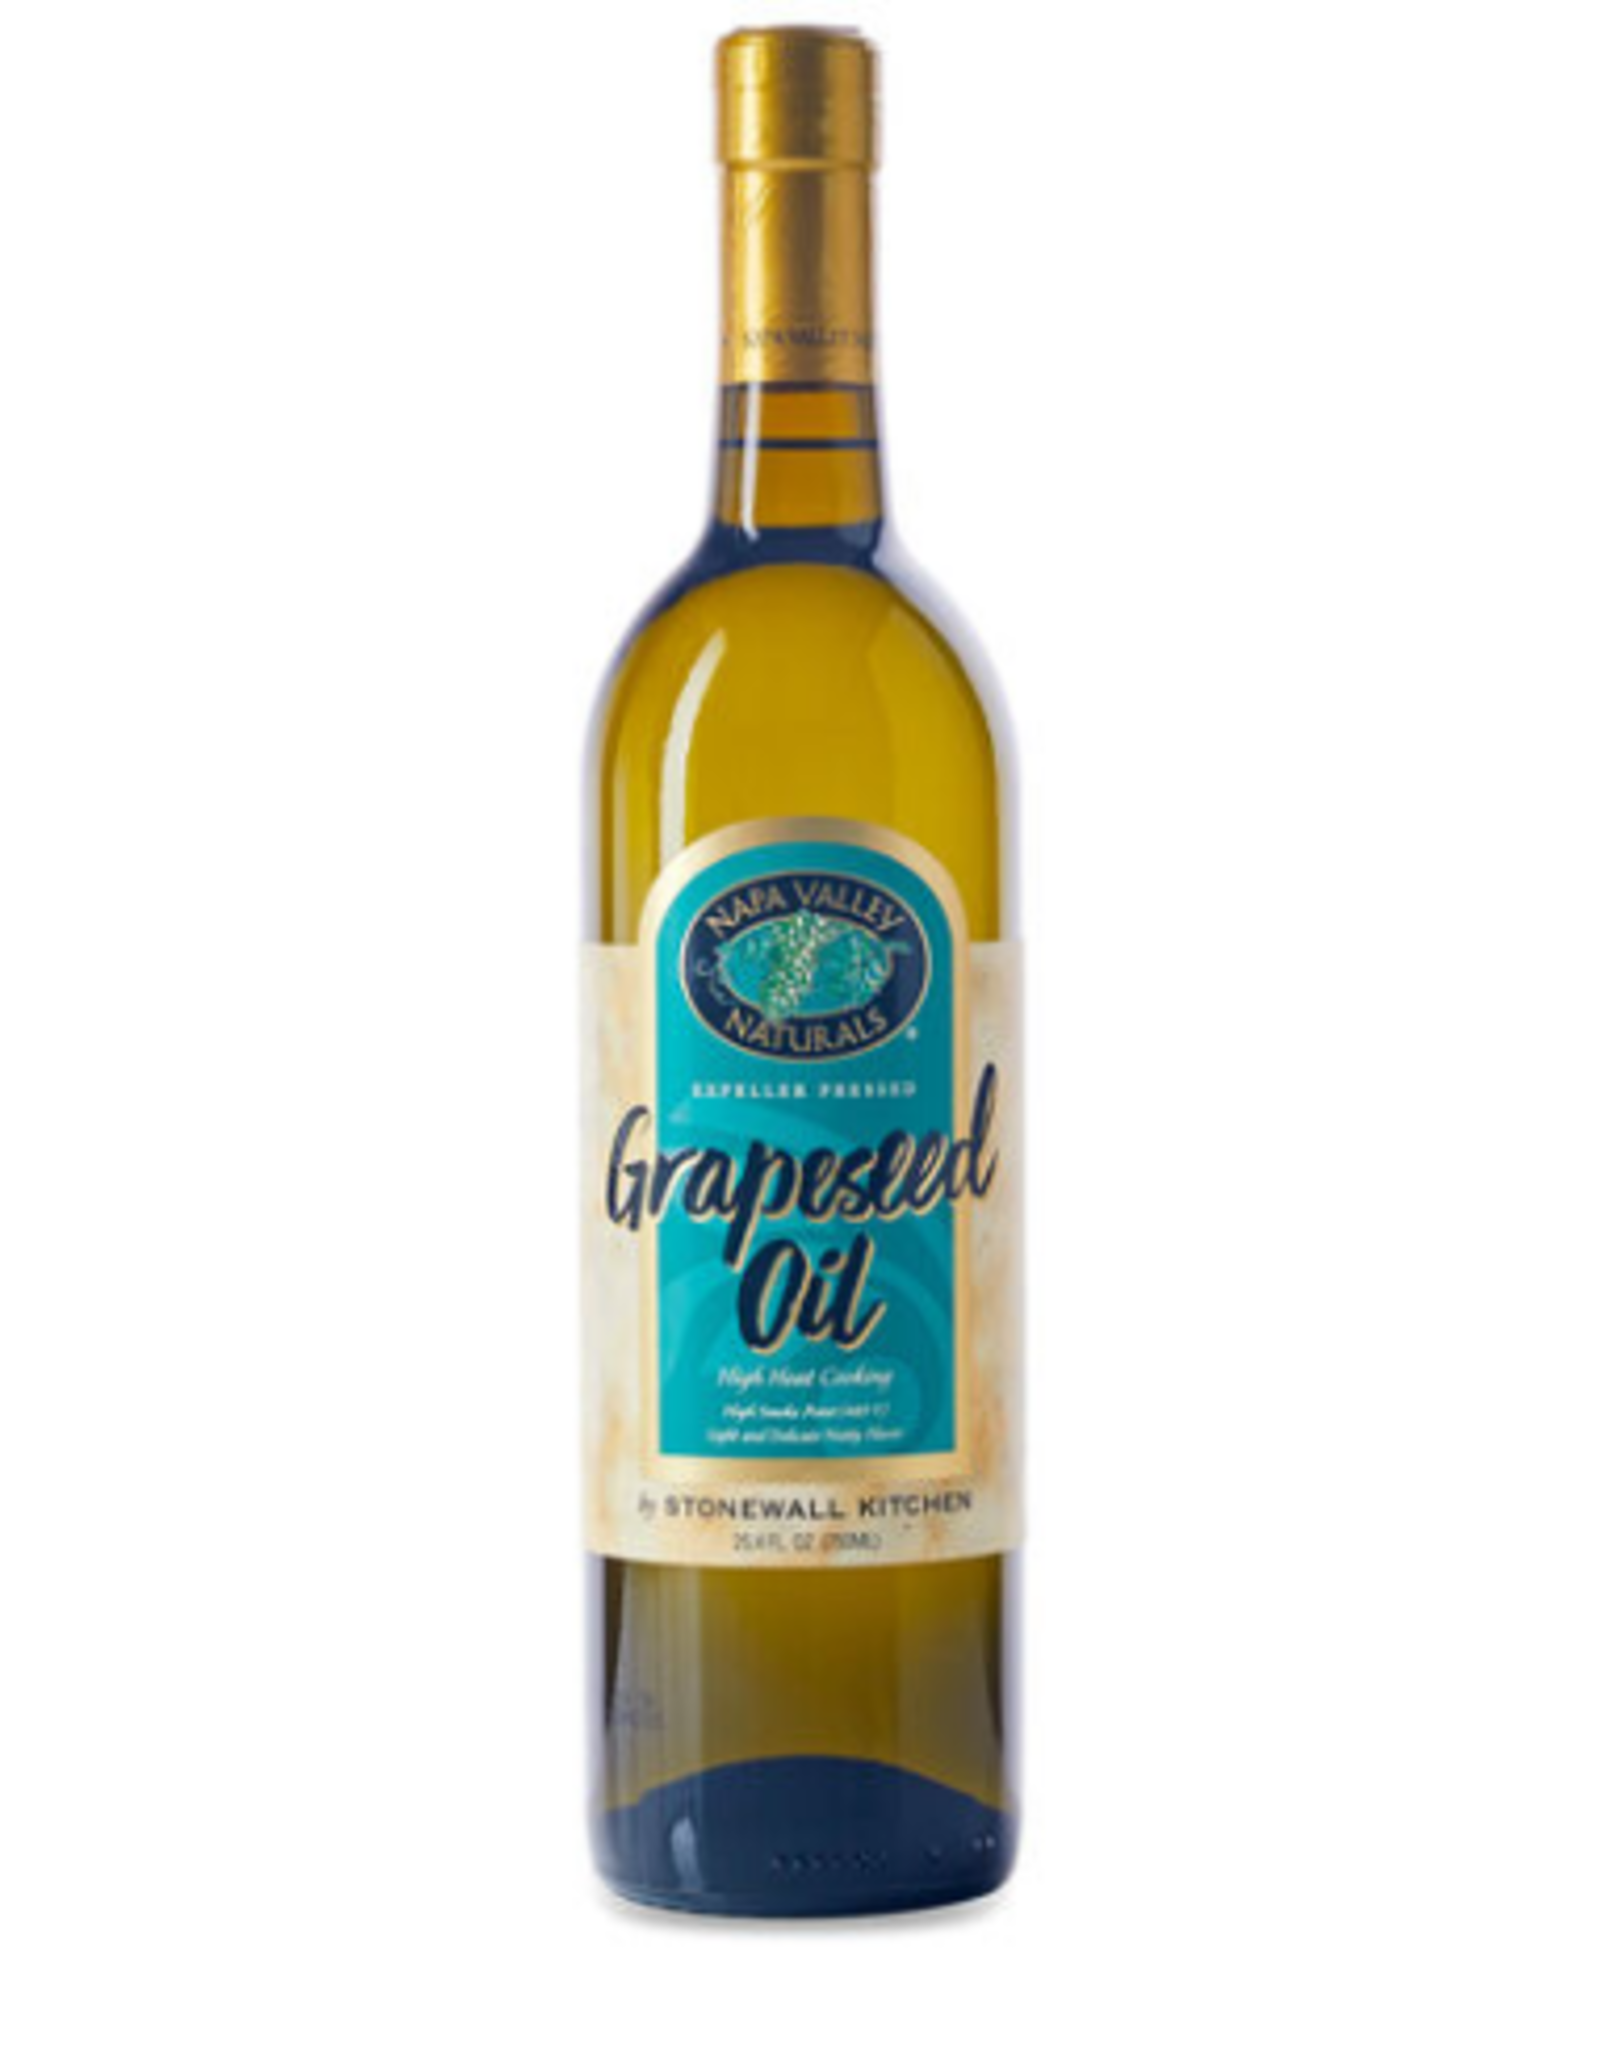 Stonewall Kitchen Grapeseed Oil 25.4oz Napa Valley Naturals